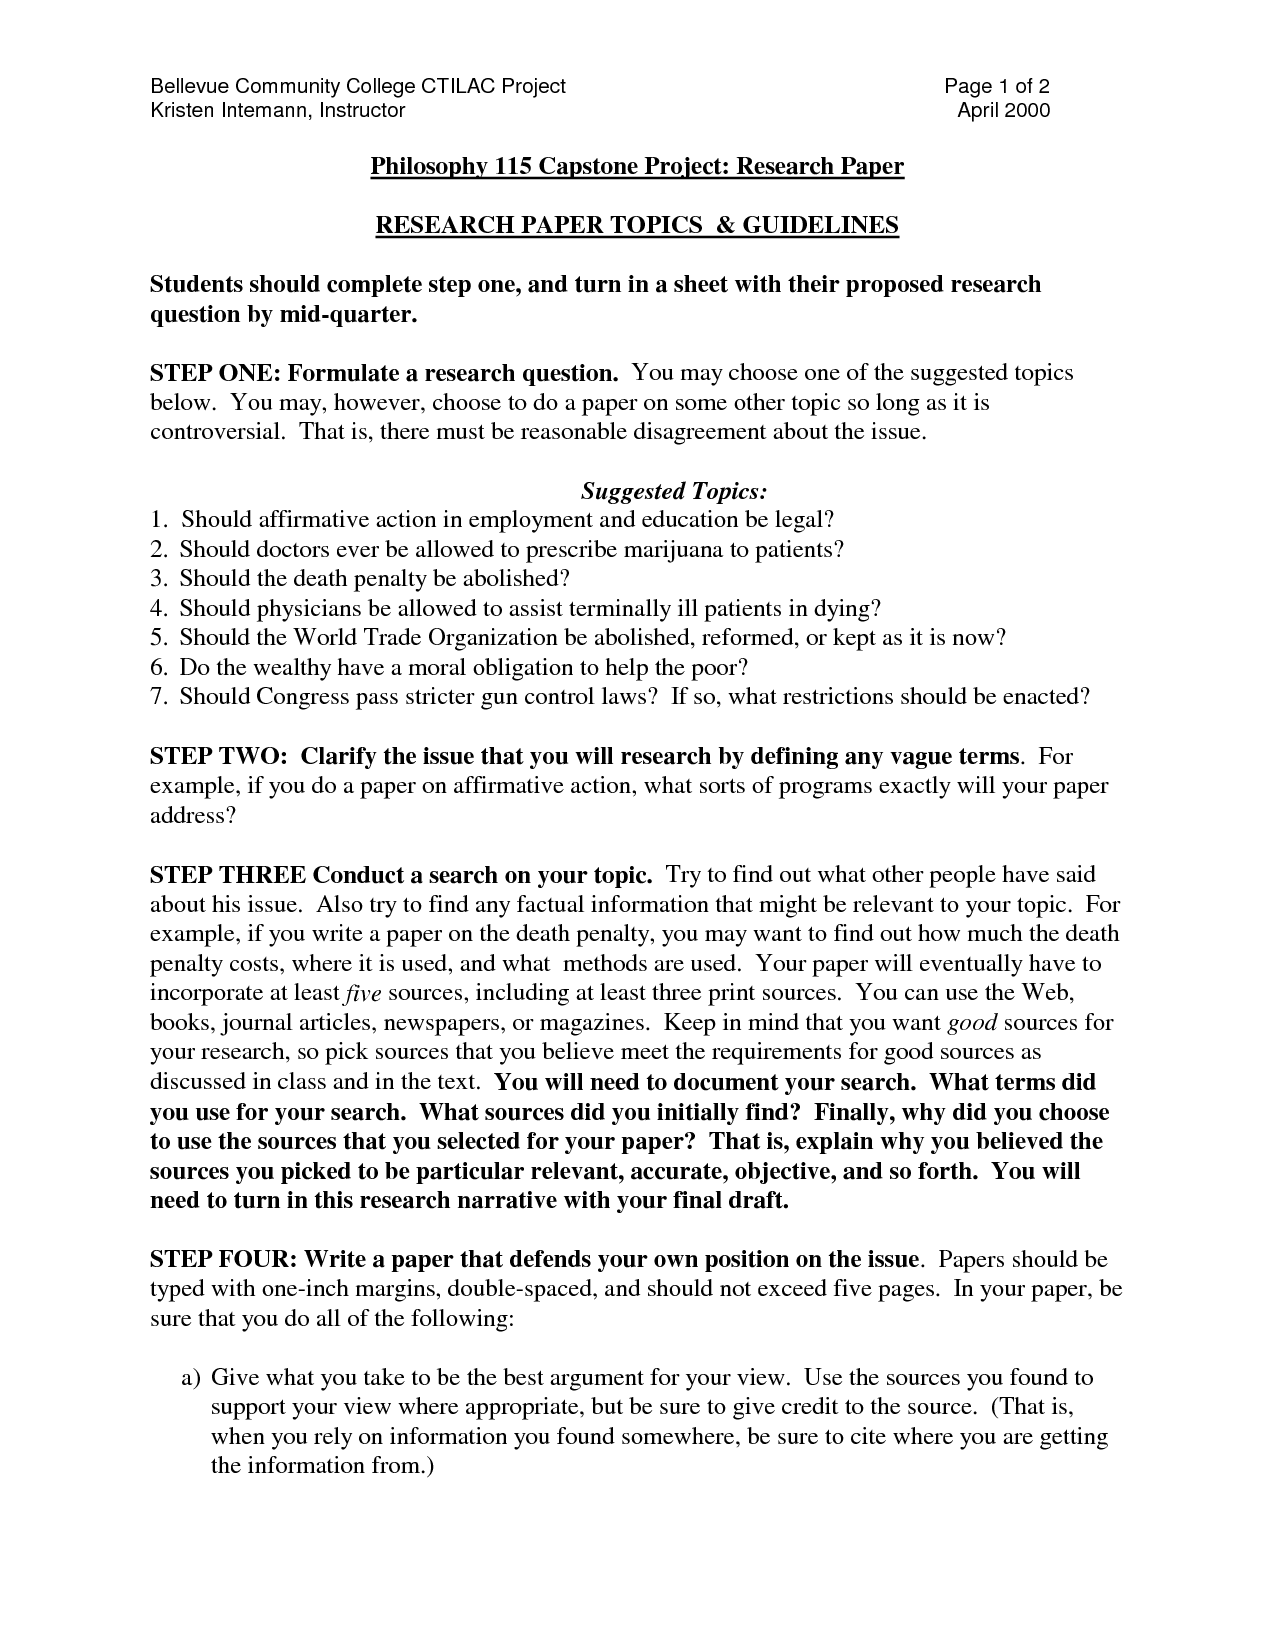 Science And Technology Essays  Interesting Persuasive Essay Topics For High School Students also Spm English Essay  College Research Paper Example Essays Sample Essay  Modest Proposal Essay Examples